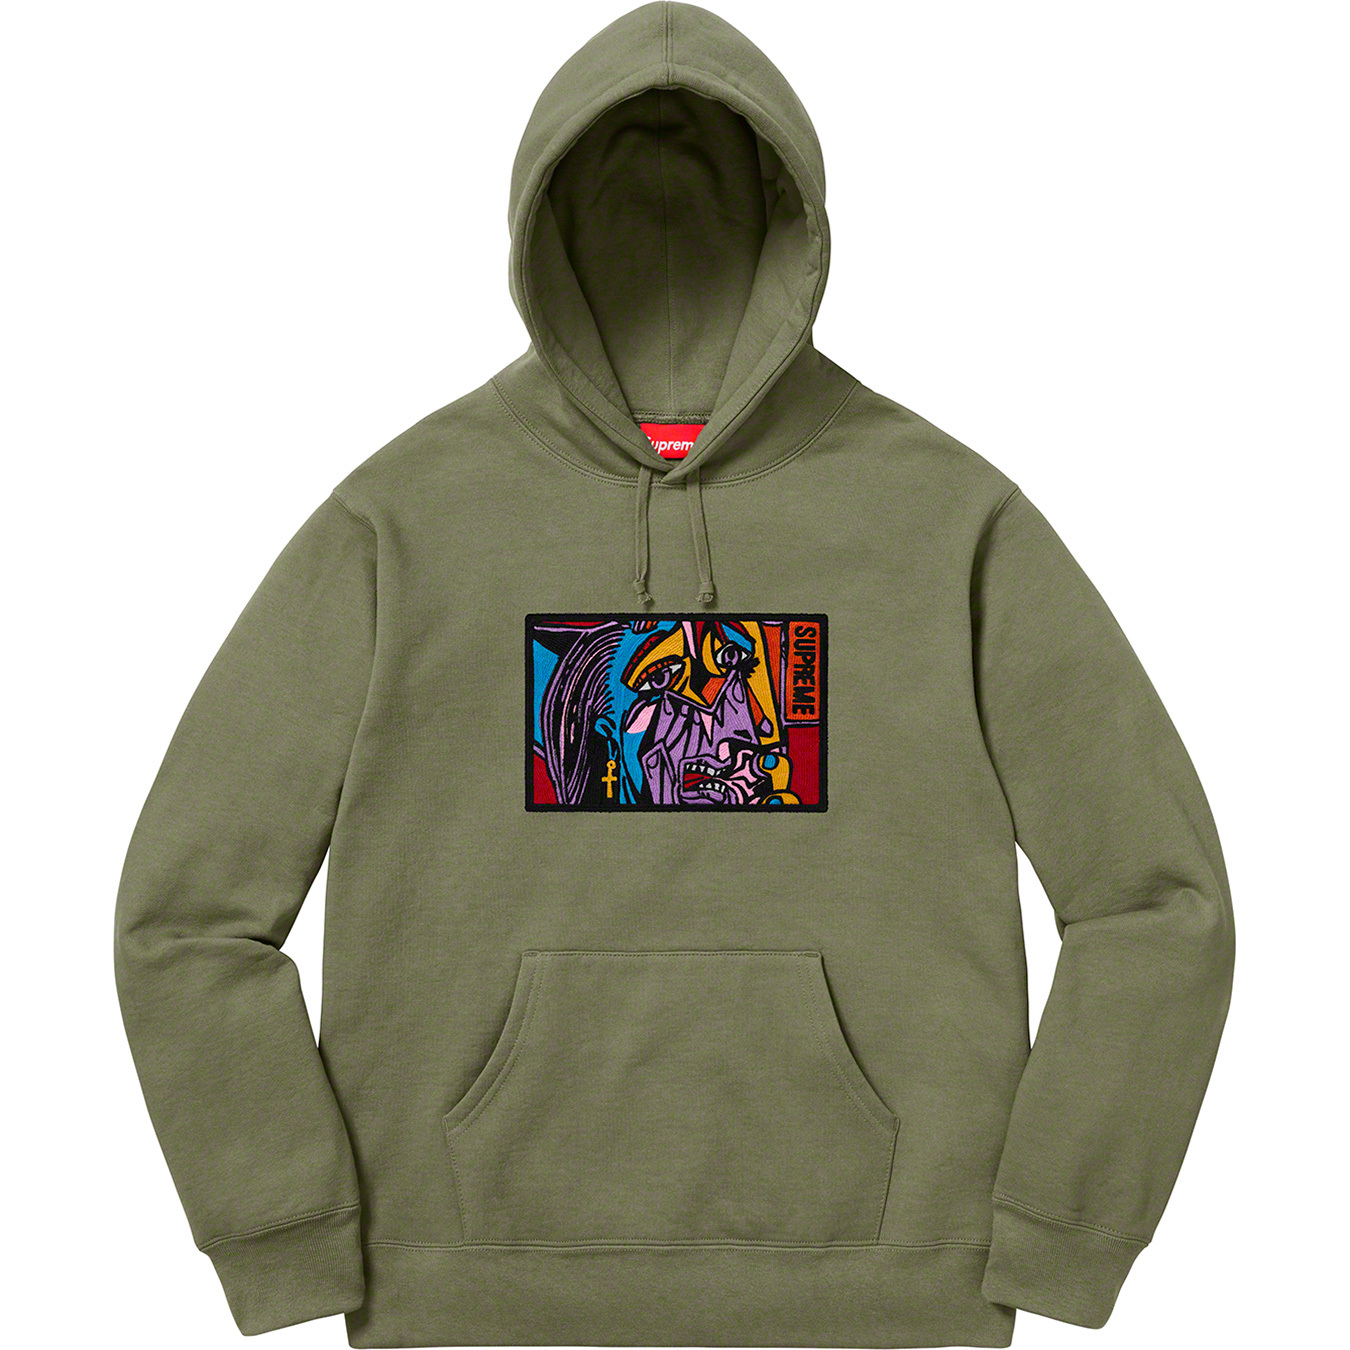 supreme-18aw-fall-winter-chainstitch-hooded-sweatshirt